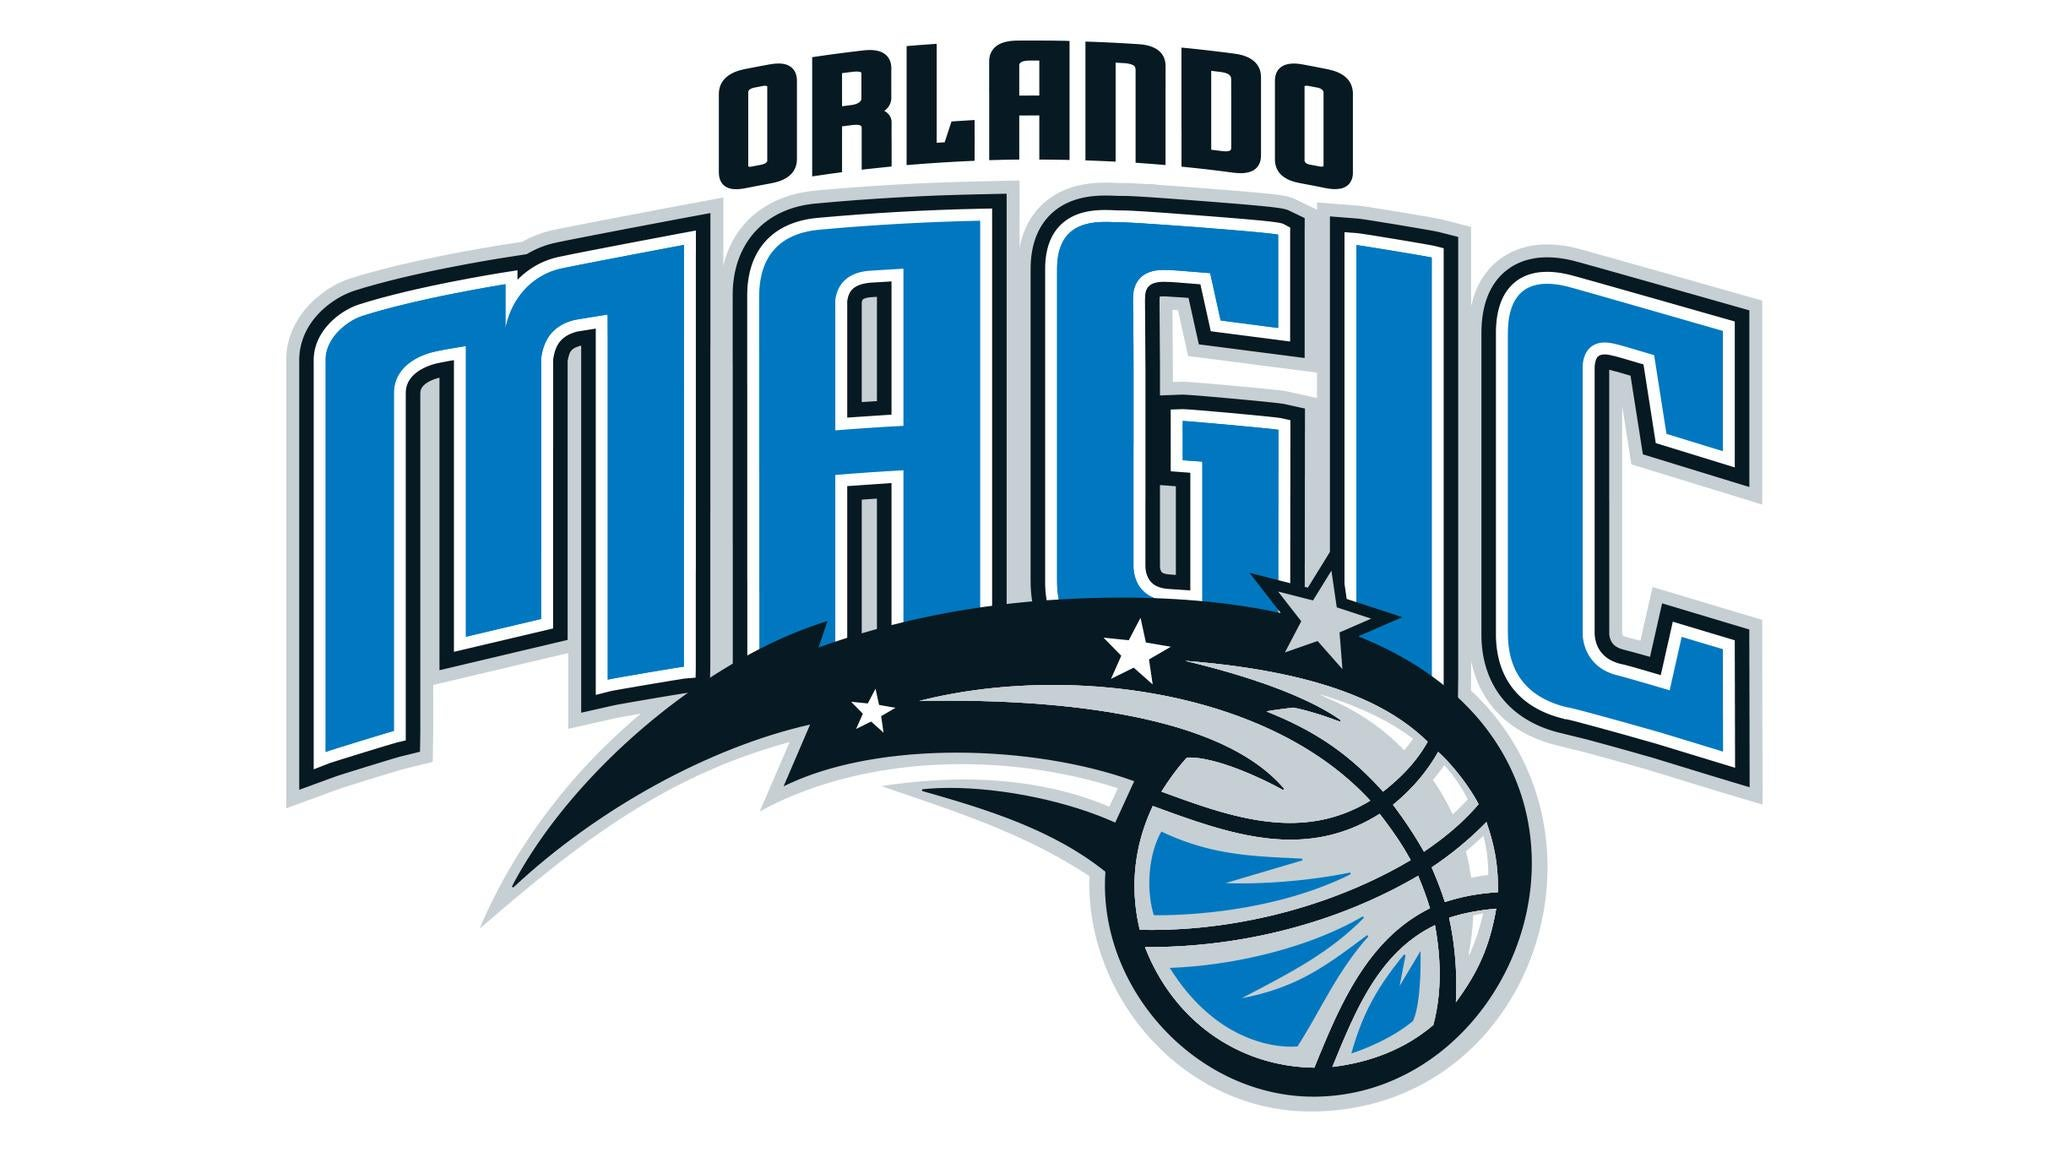 Orlando Magic vs. Sacramento Kings at Amway Center